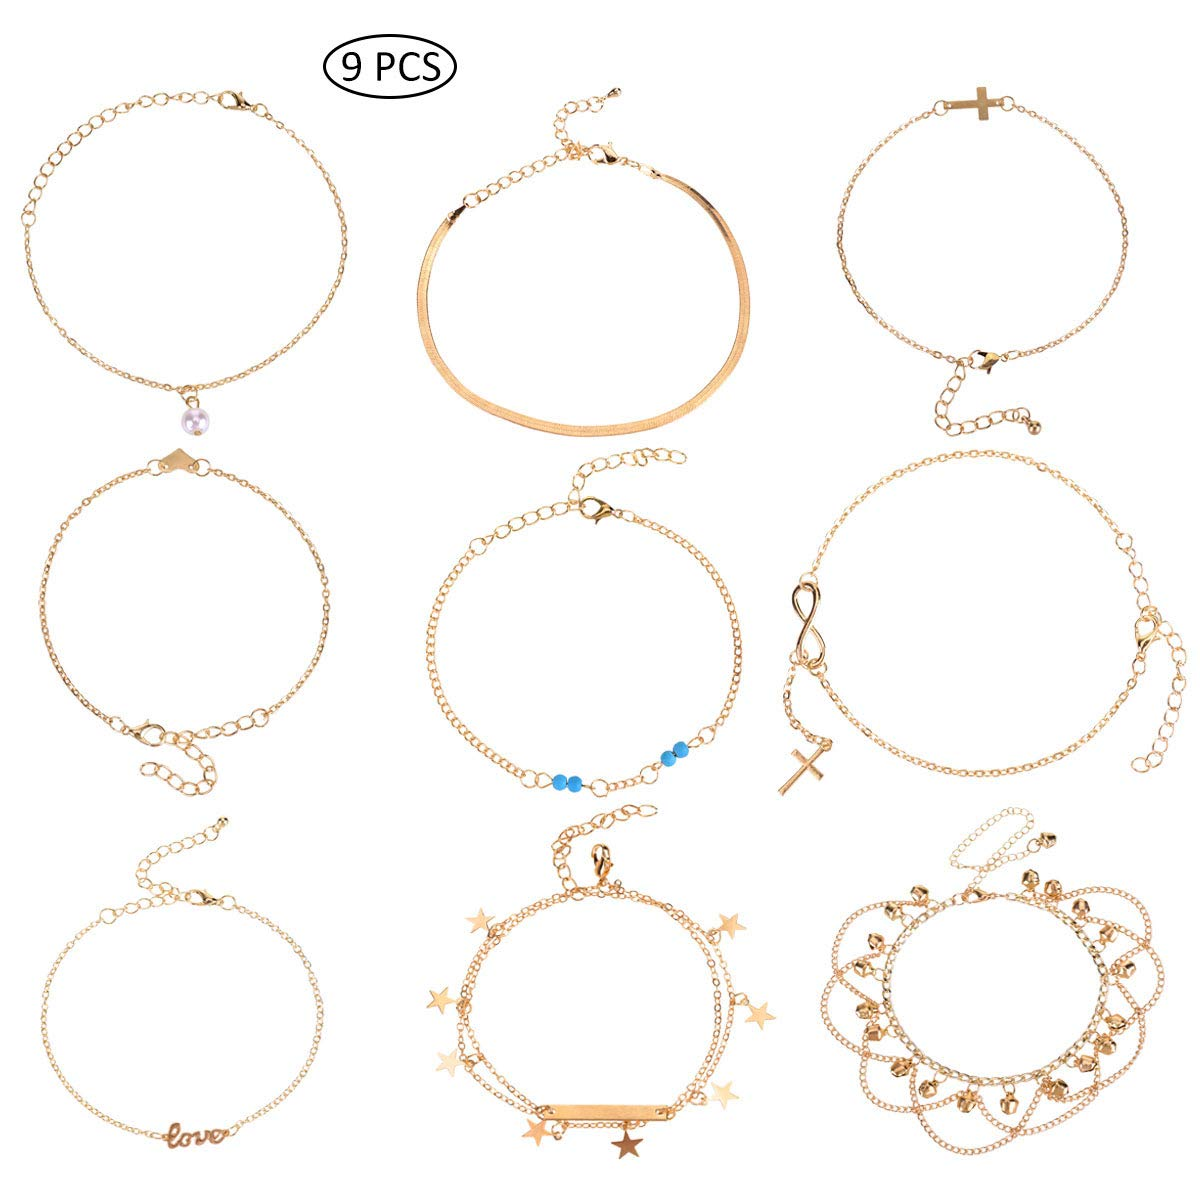 Anklets Jewelry & Watches Fashion Summer Metal Chain Fish Scale Anklet Beach Barefoot Chain Jewelry Gifts Goods Of Every Description Are Available